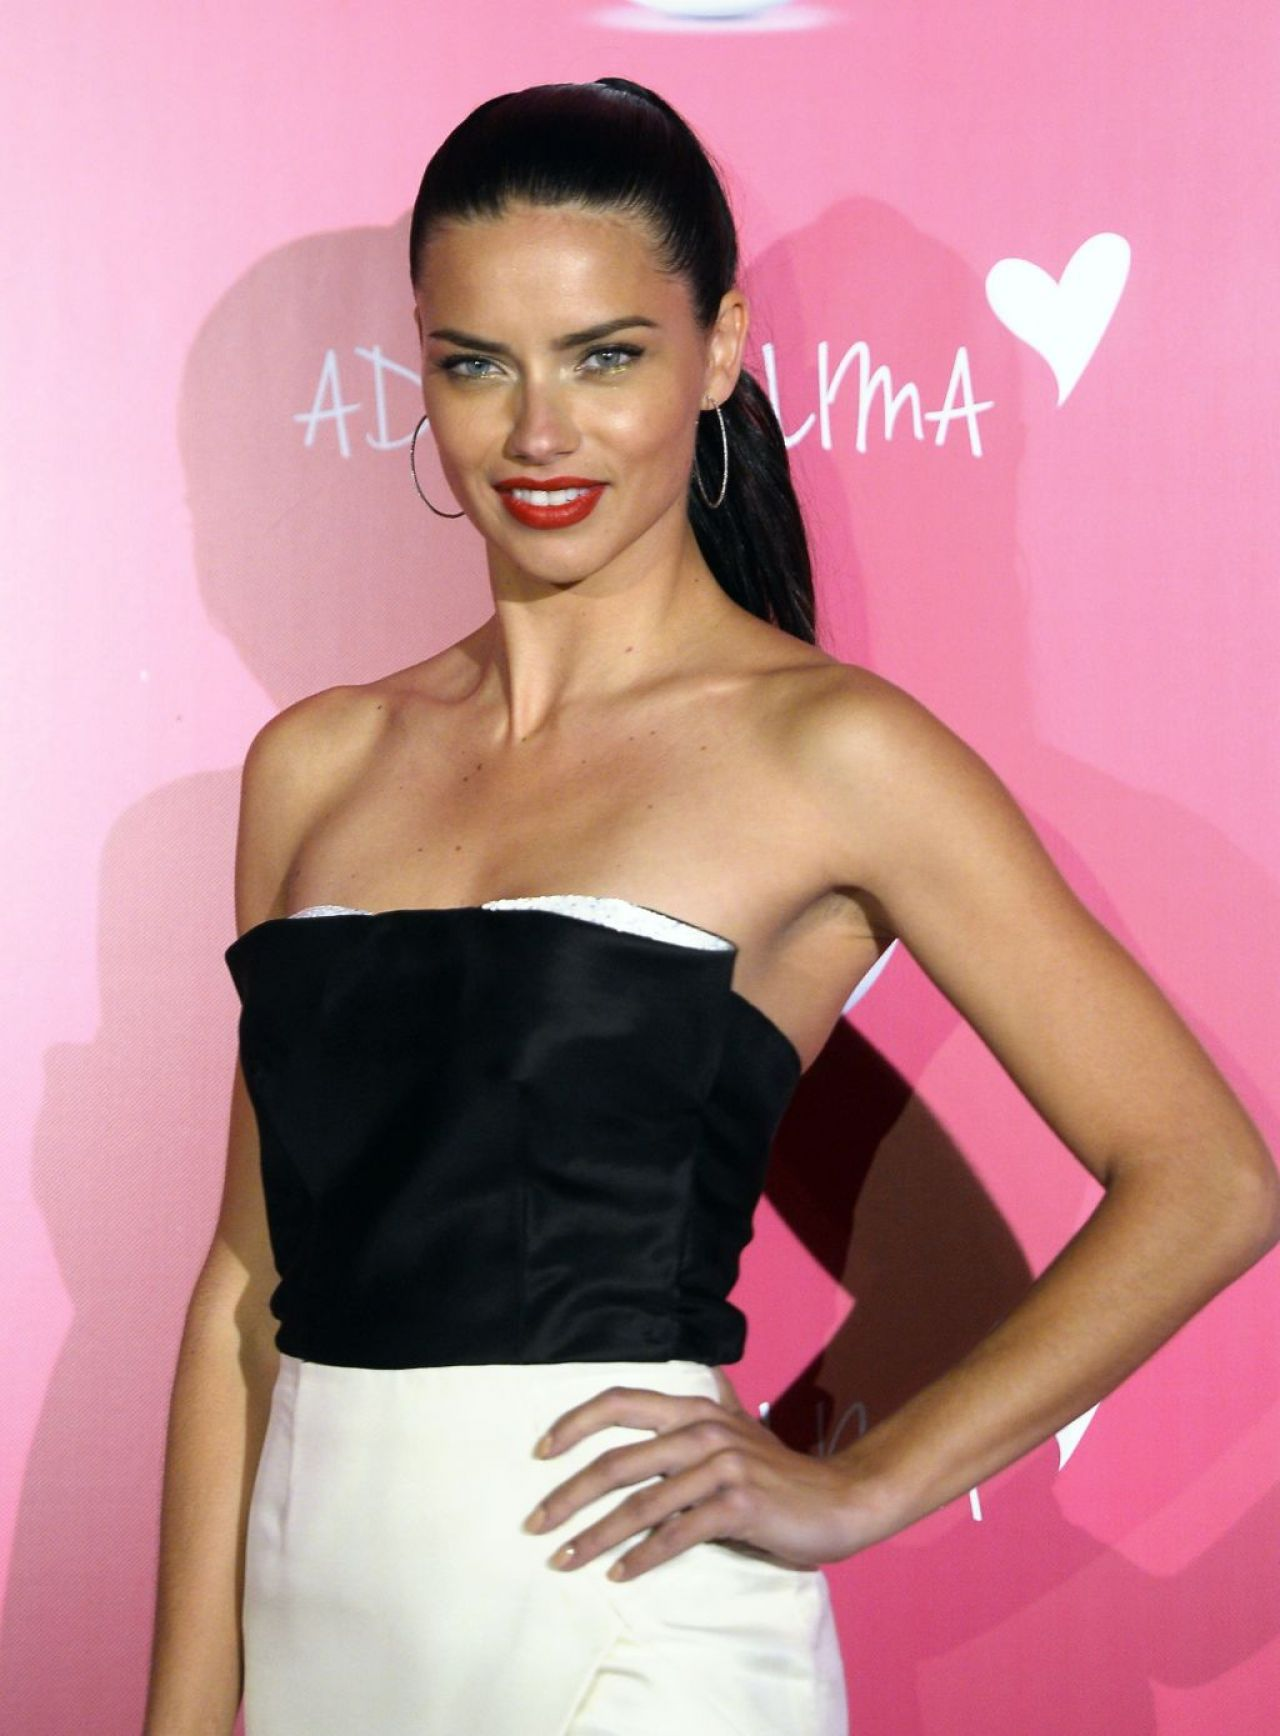 Adriana Lima in Istanbul - Promoting Veet Naturals - April 2014